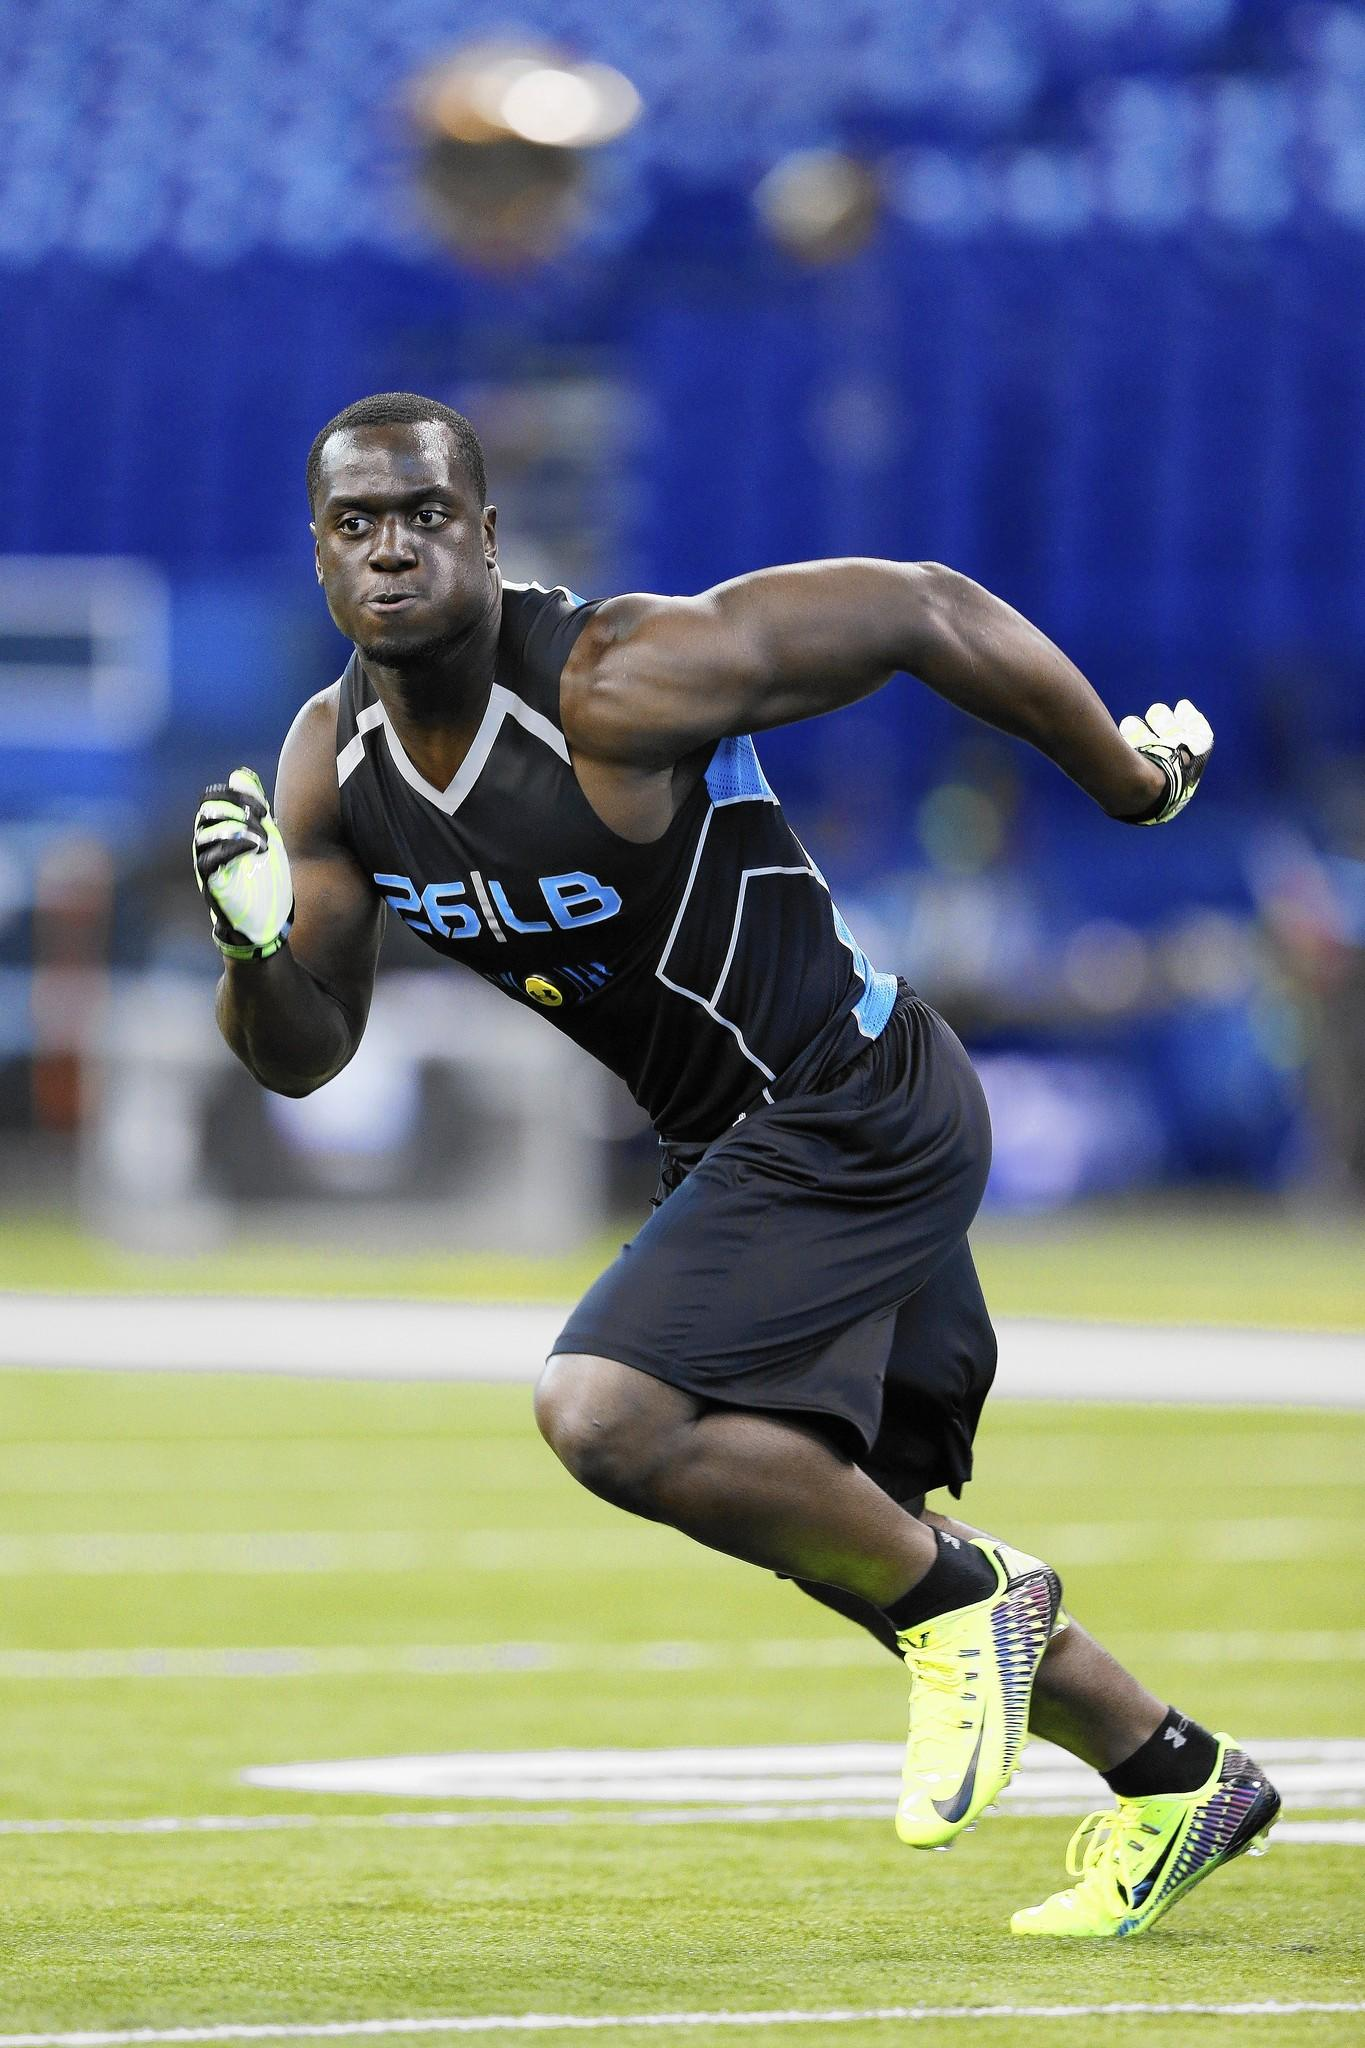 Former Notre Dame linebacker Prince Shembo takes part in the 2014 NFL Combine on Monday in Indianapolis. Over the weekend, he said he was the player accused of a sexual attack in 2010. The accuser killed herself days after making the report.